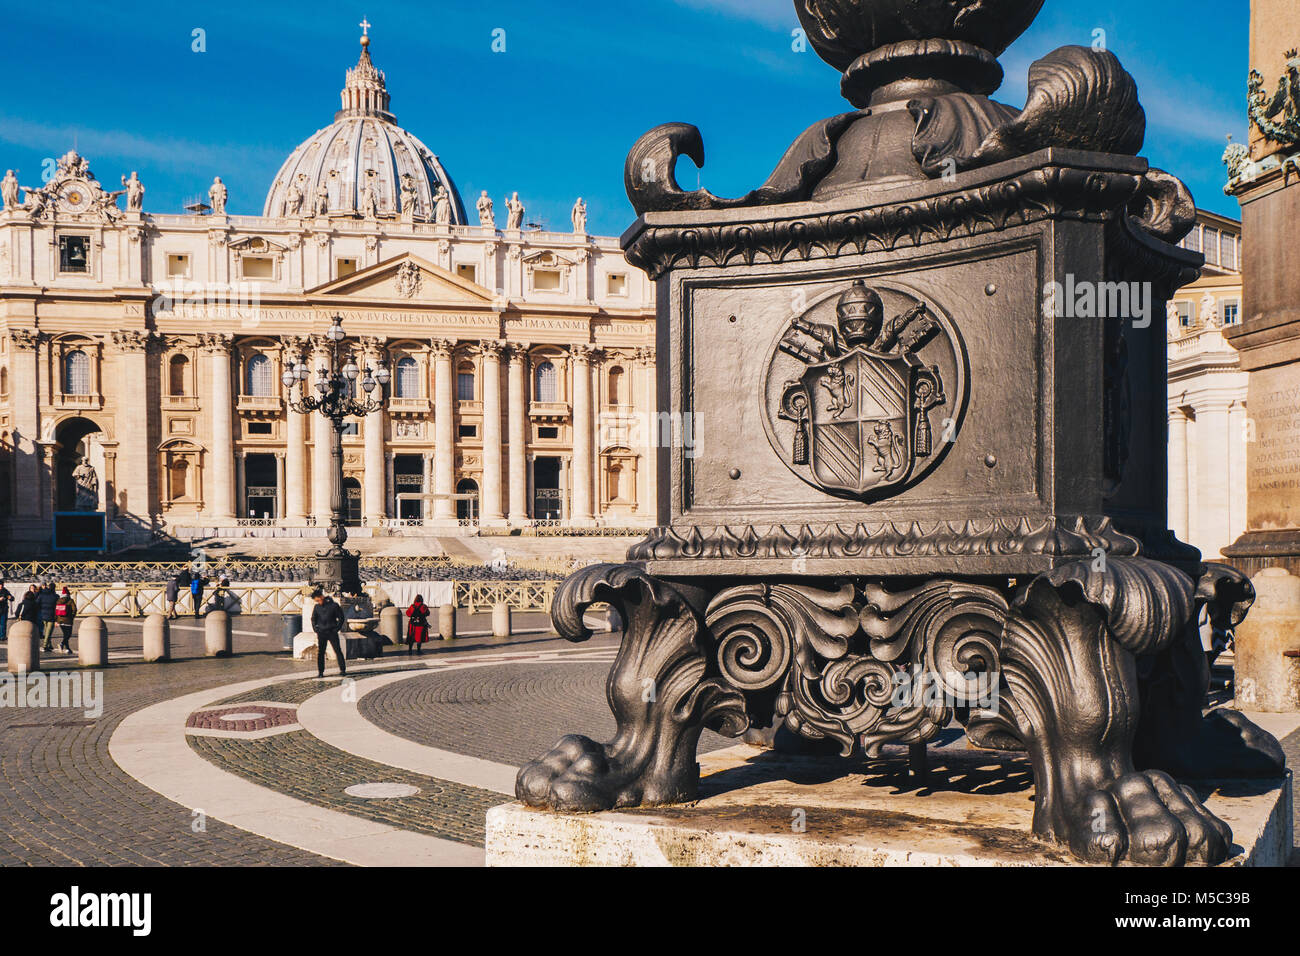 St. Peter's square and Saint Peter's Basilica in the Vatican City in Rome, Italy Stock Photo